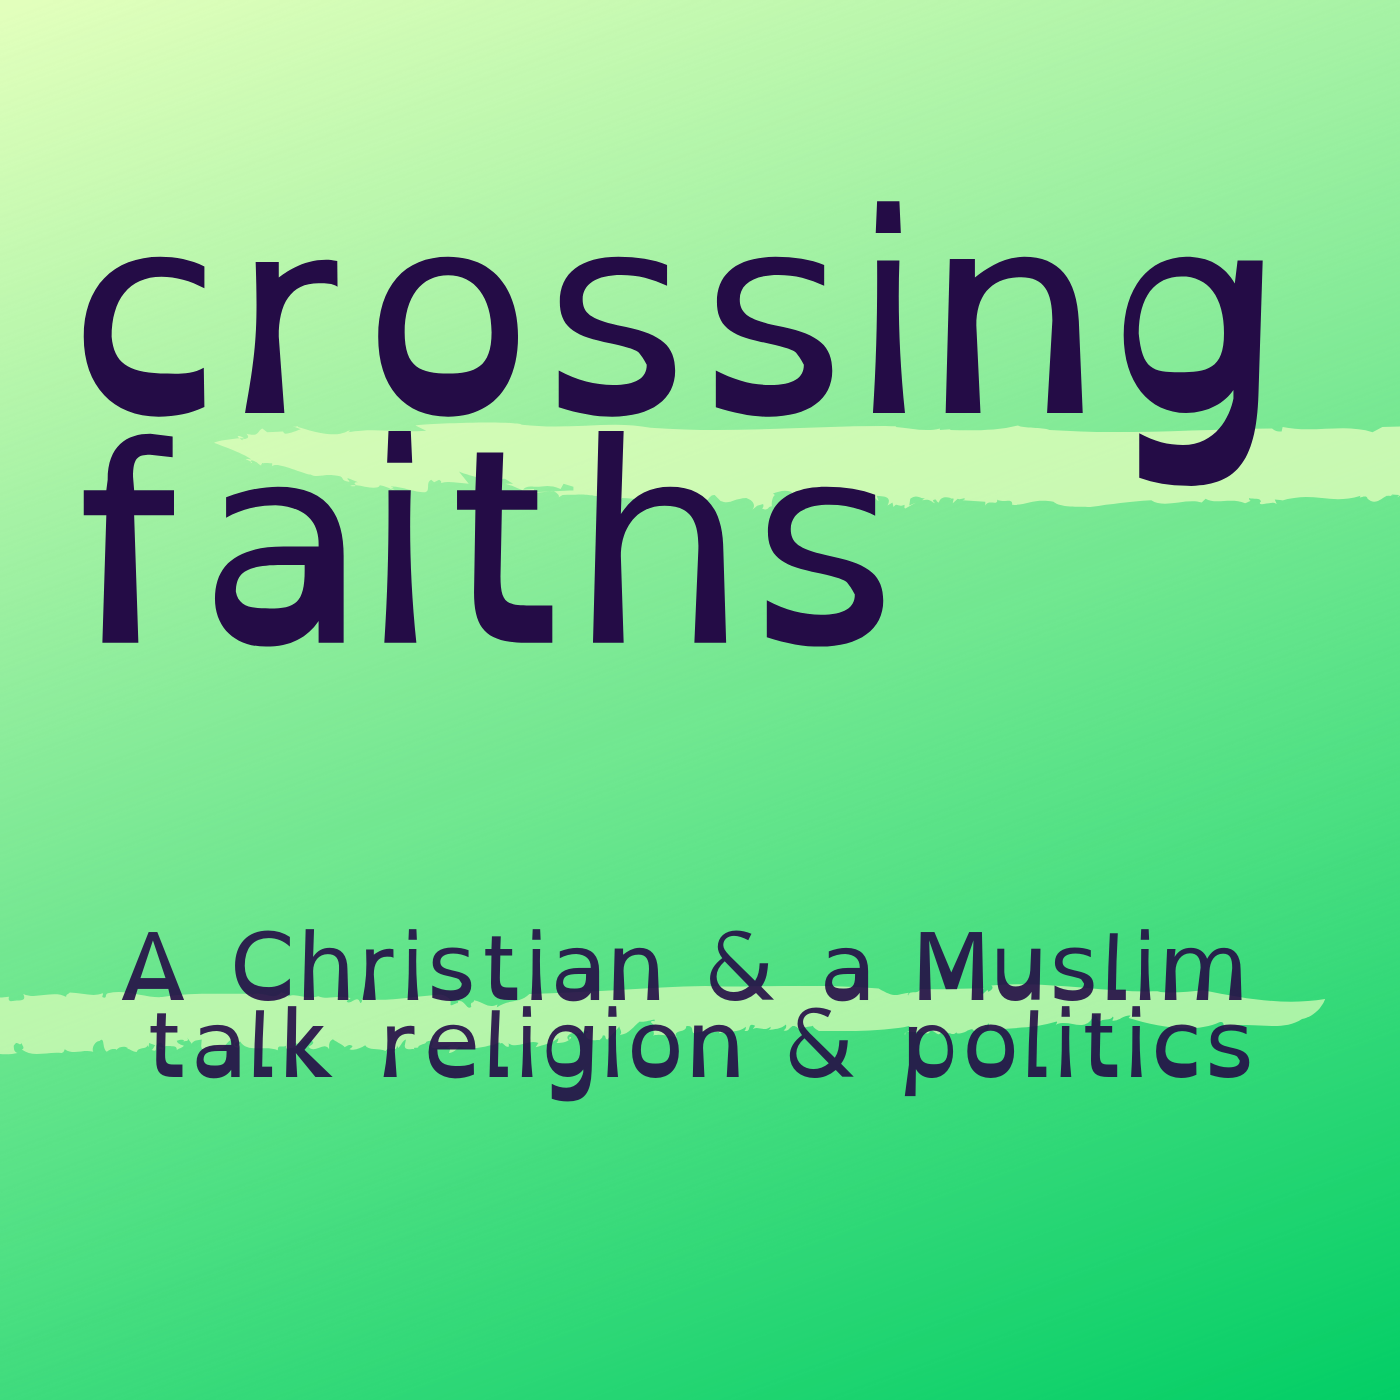 crossing faiths.png